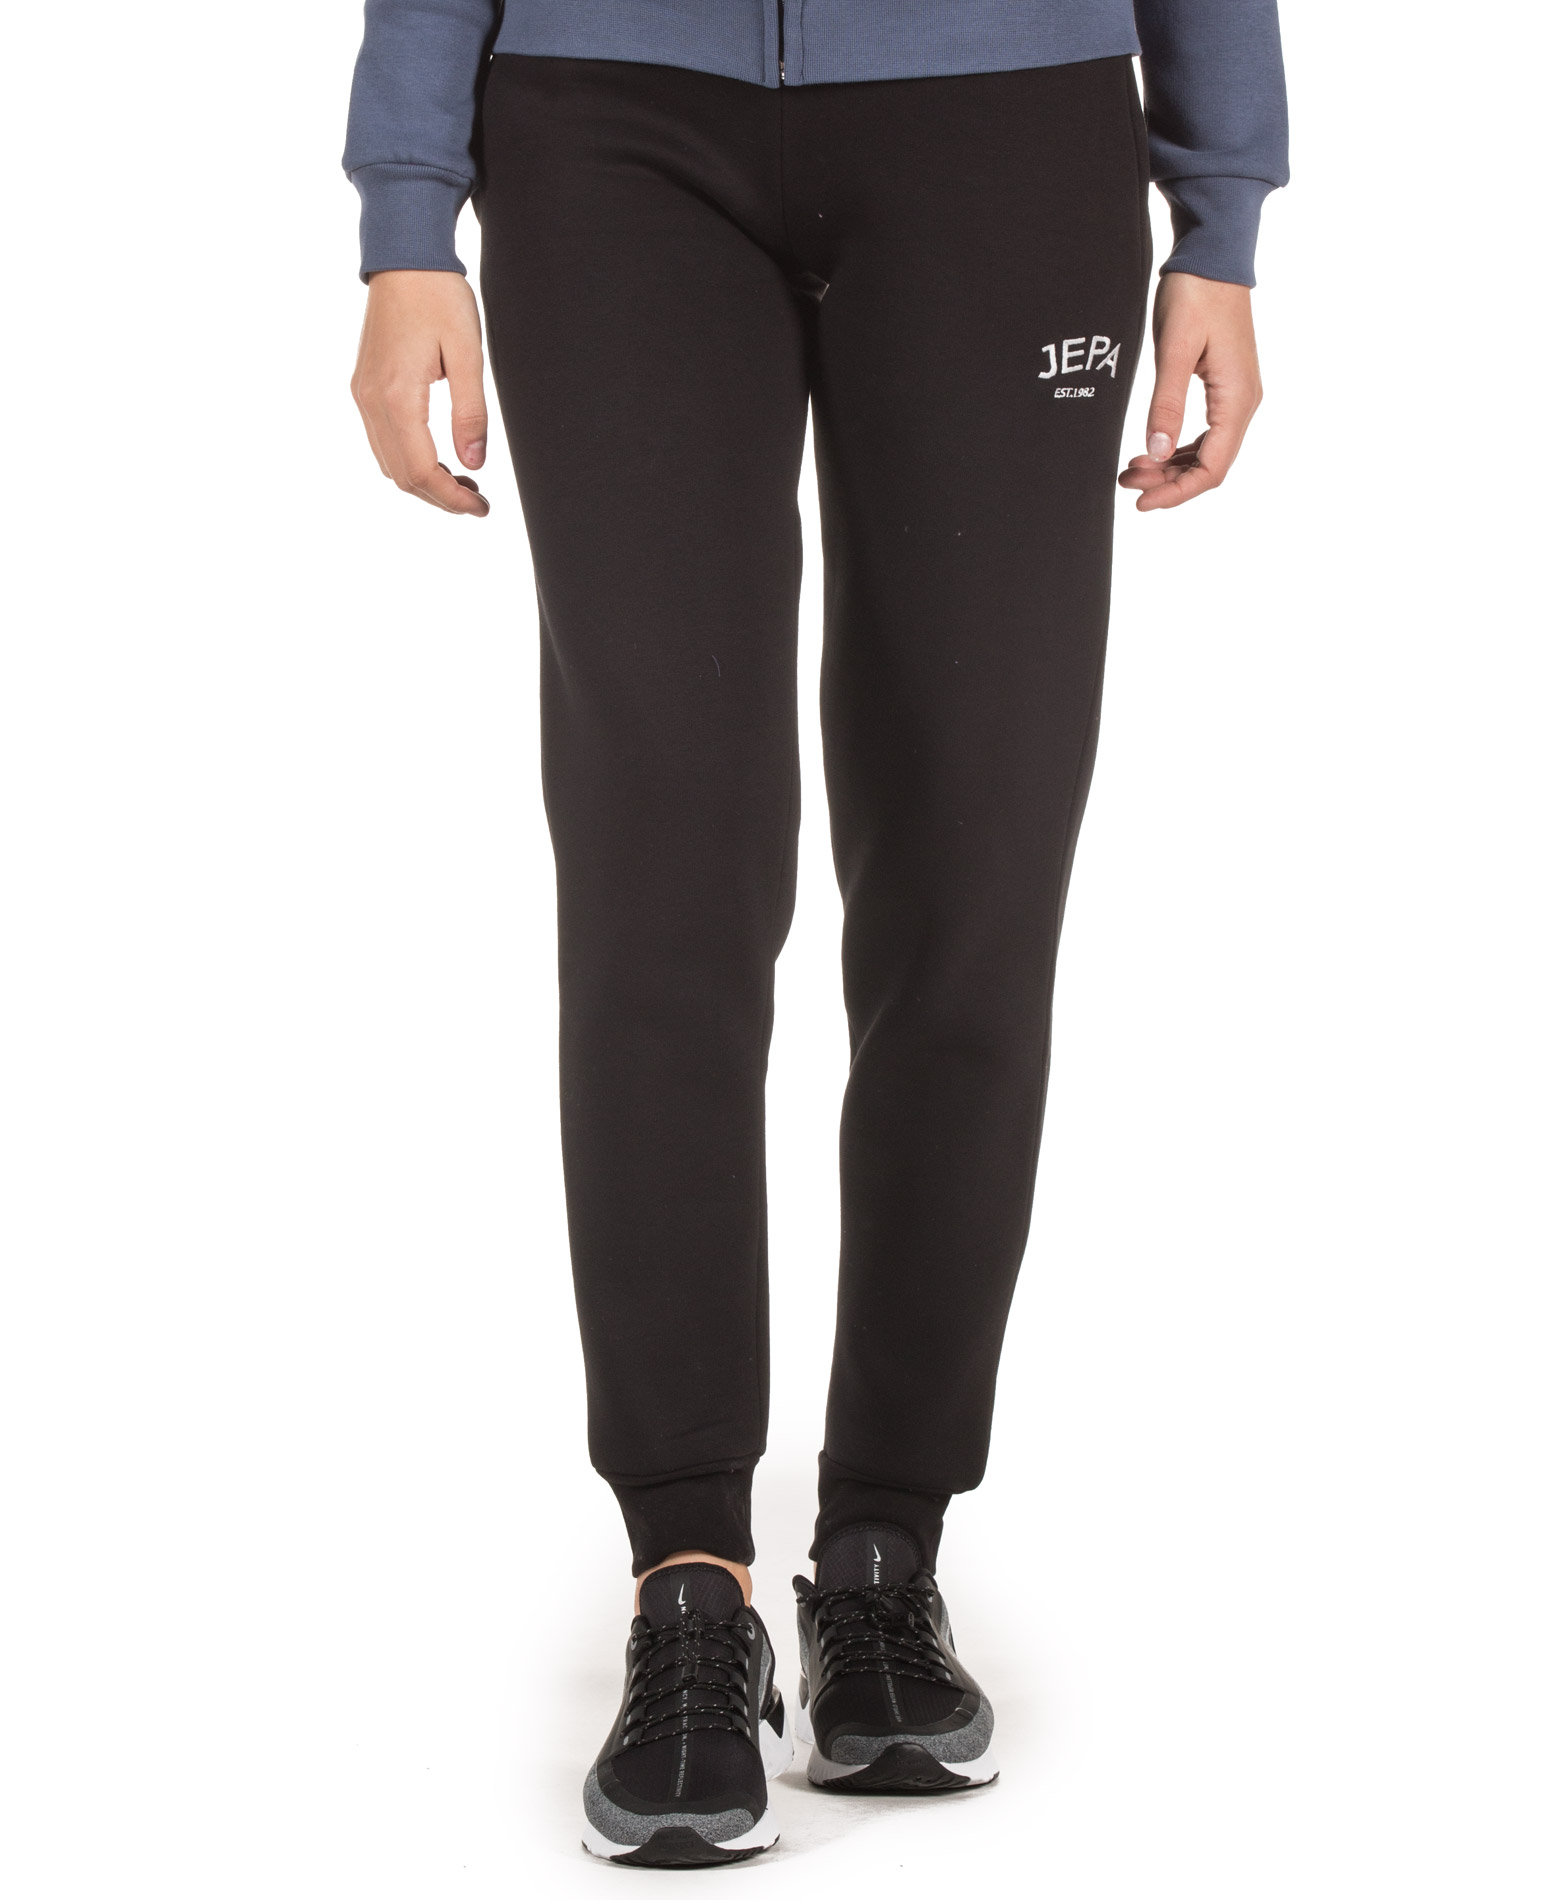 JEPA WMN JOGGING PANTS WITH EMBROIDERY 27-28022-BLACK Μαύρο